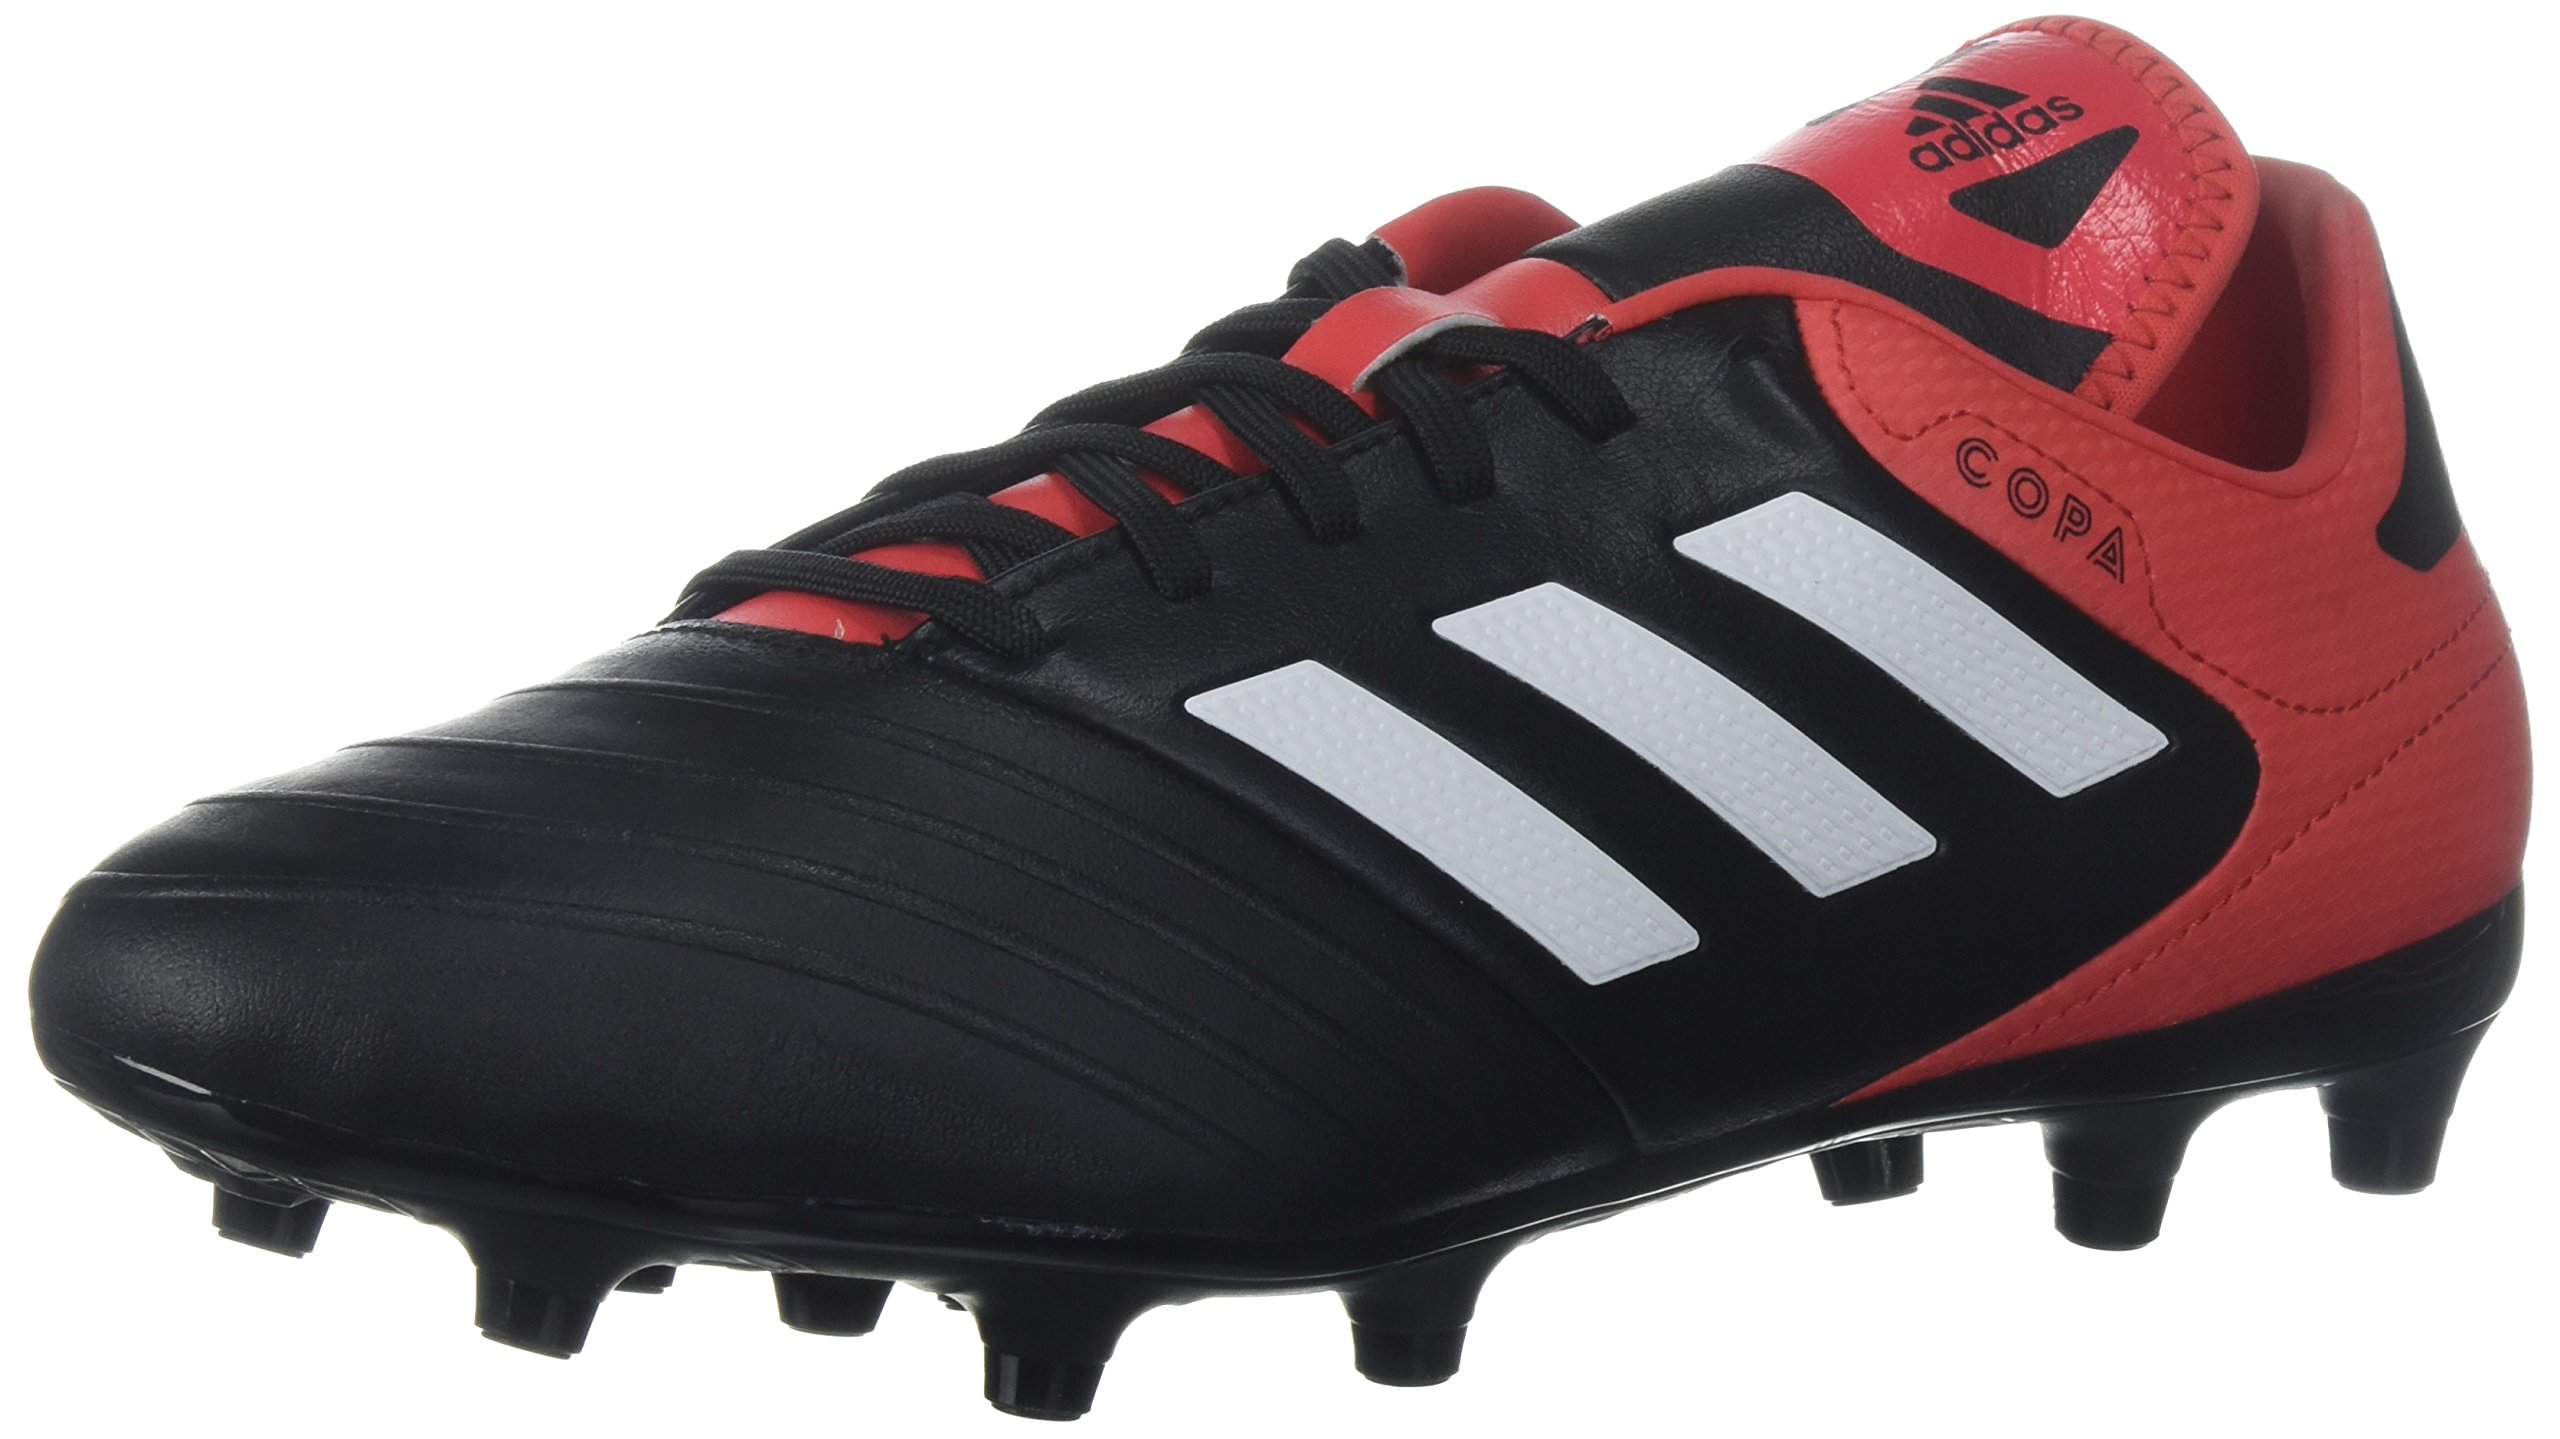 adidas Men's Copa 18.3 FG Soccer Shoe, Core Black/White/Real Coral, 13.5 M US by adidas